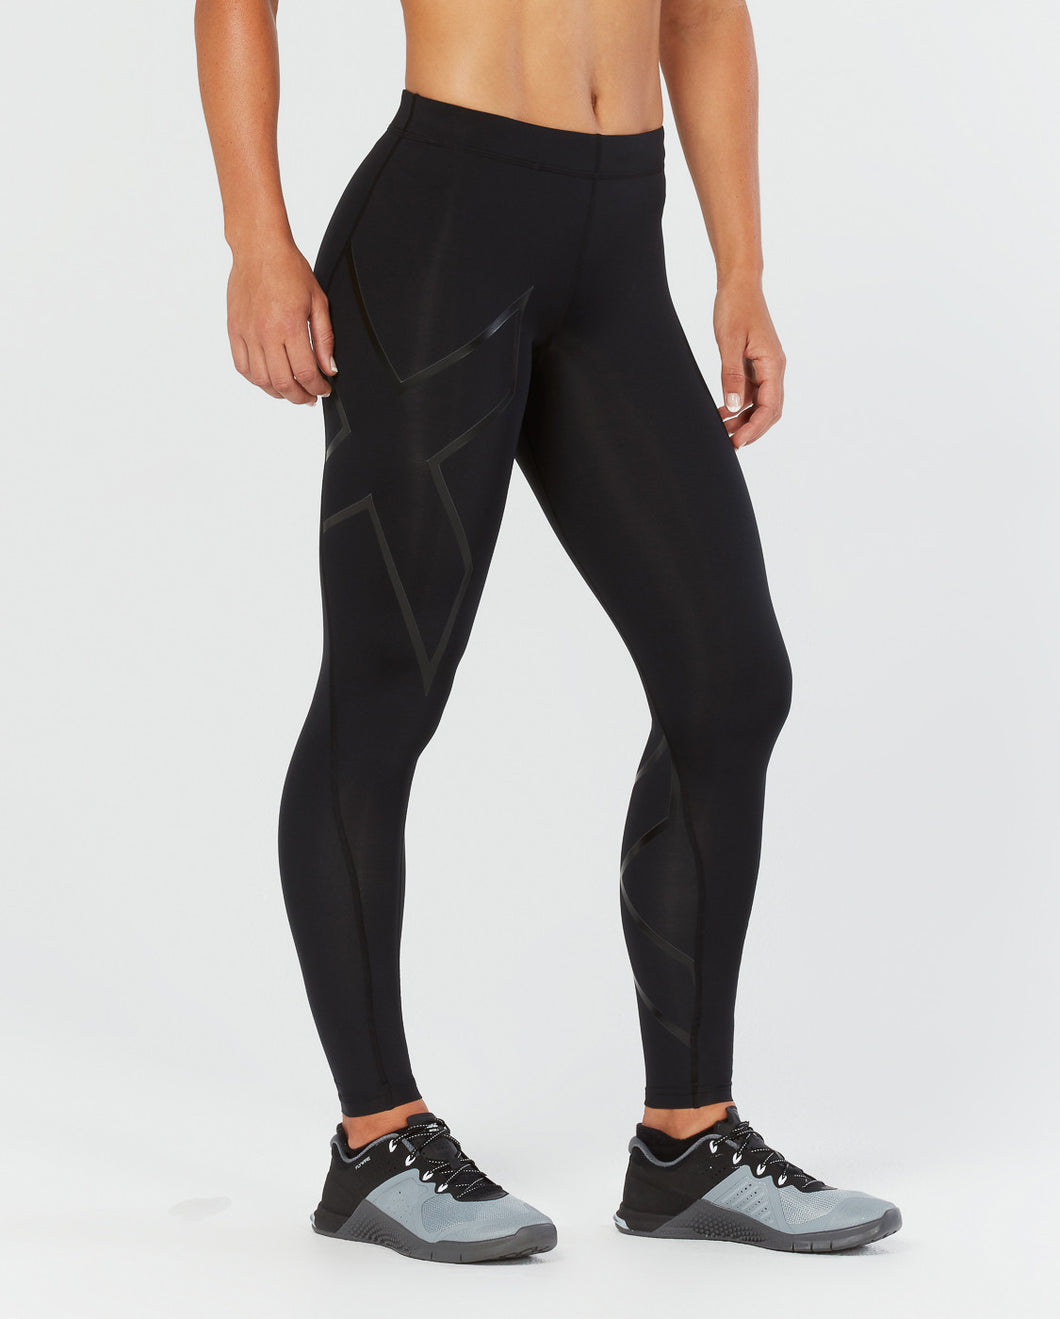 2XU  Compression Tight (W) Black/Nero